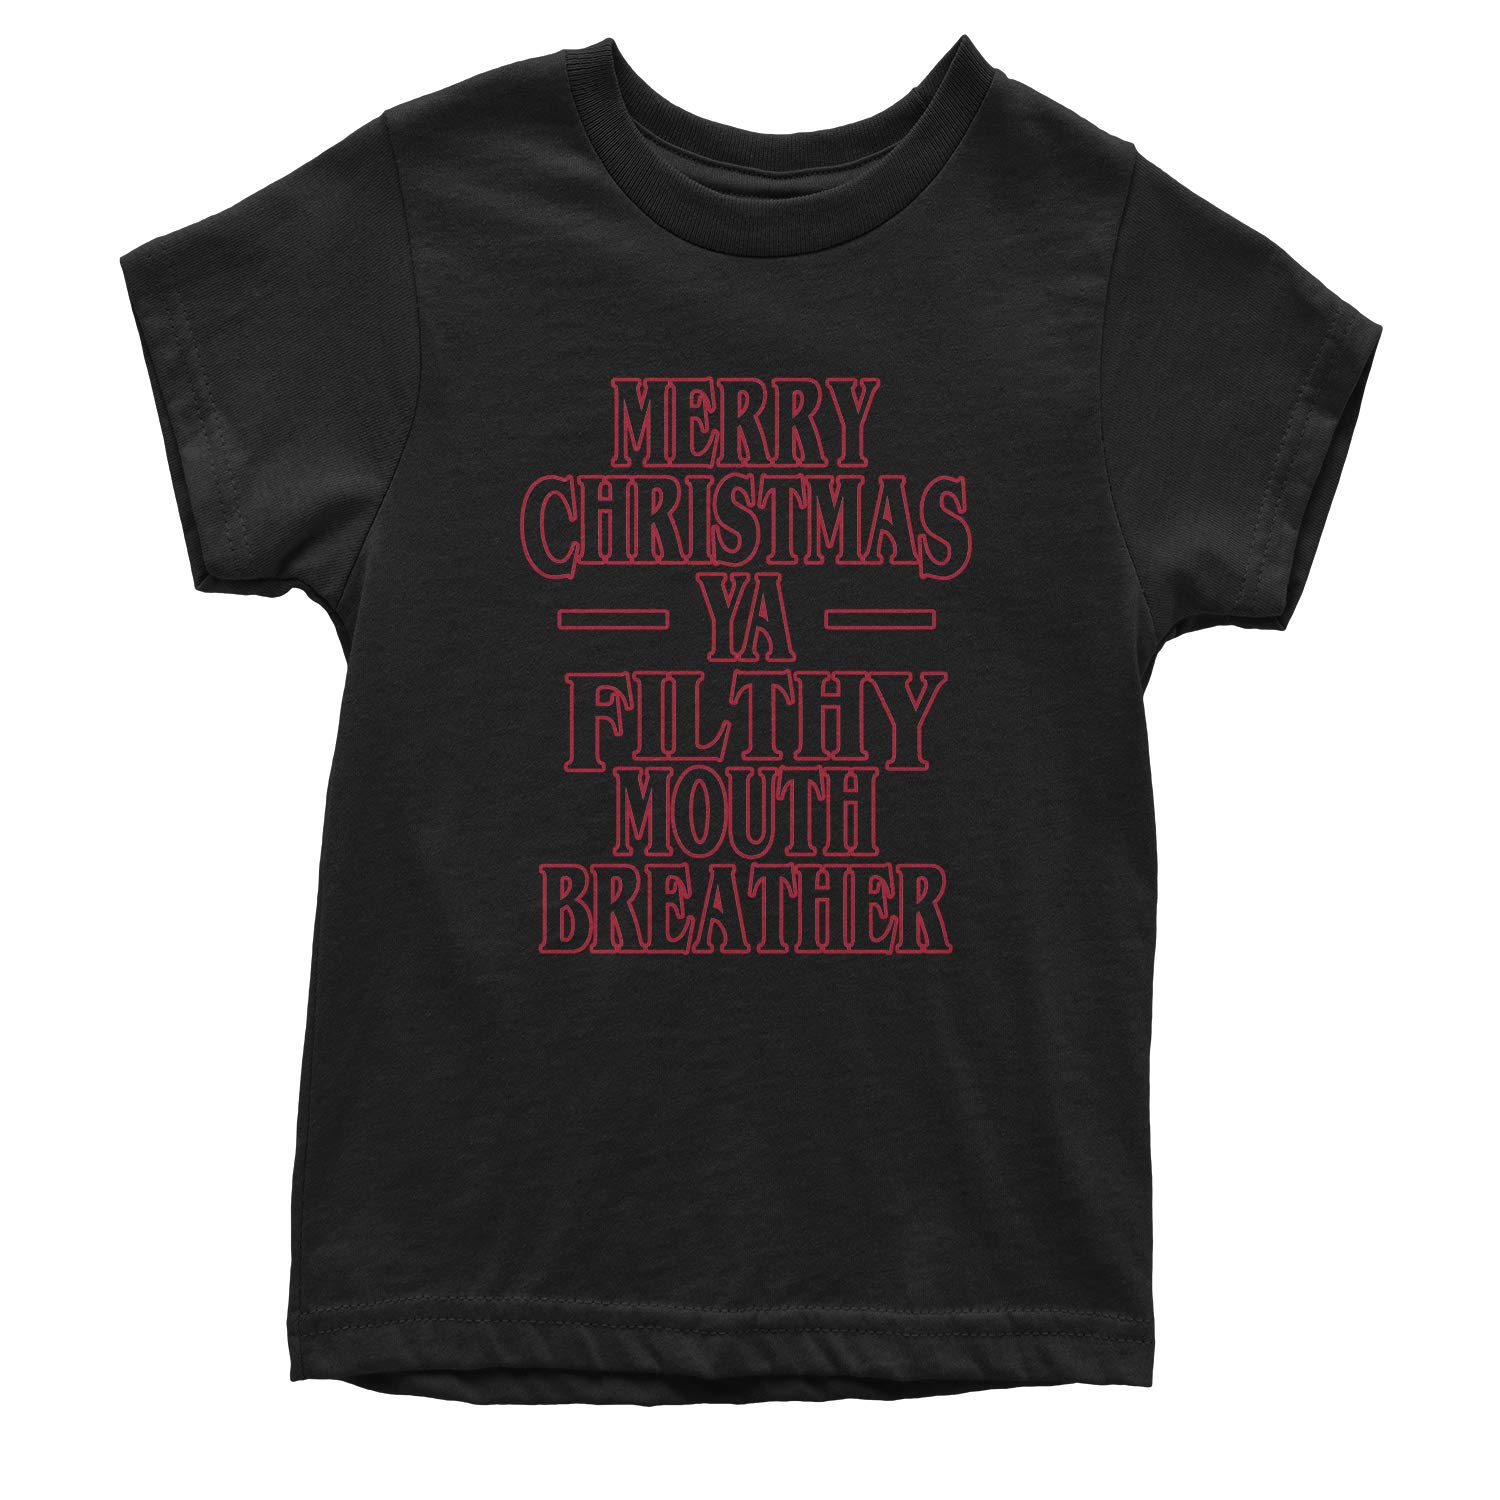 Motivated Culture Merry Christmas Ya Filthy Mouth Breather Youth T-Shirt